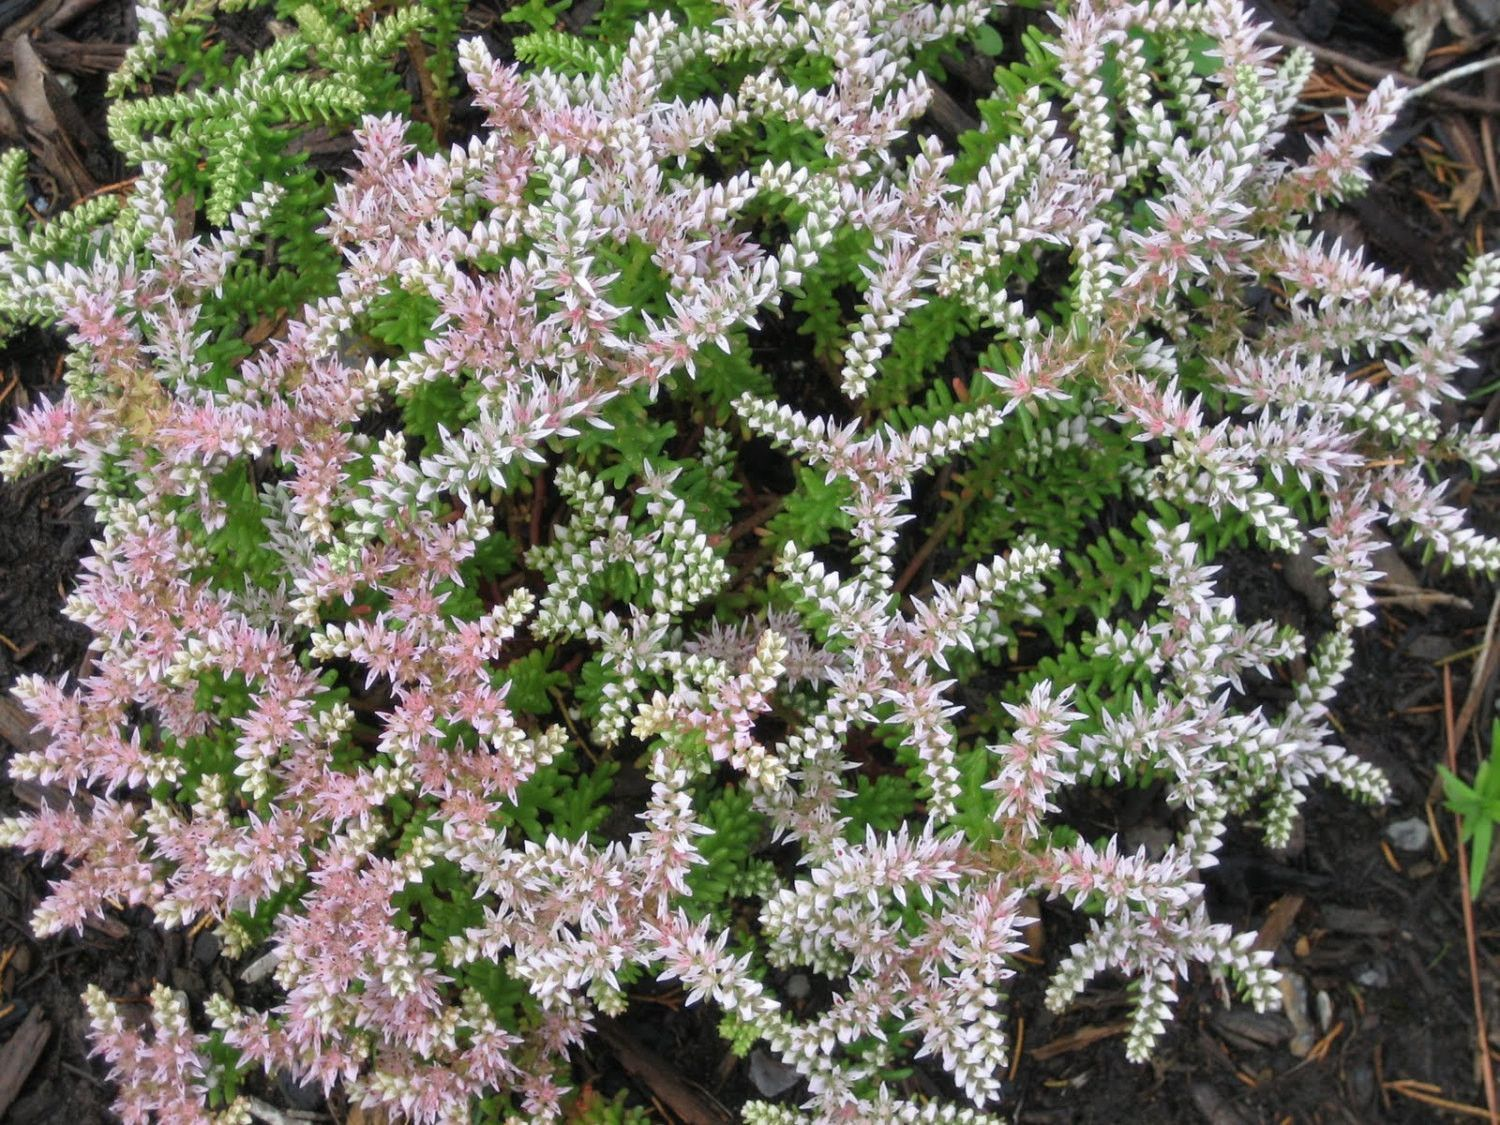 Sedum Seastar Seeds Succulent Stonecrop Perennial Groundcover Ground Cover Seeds Ground Cover Sedum